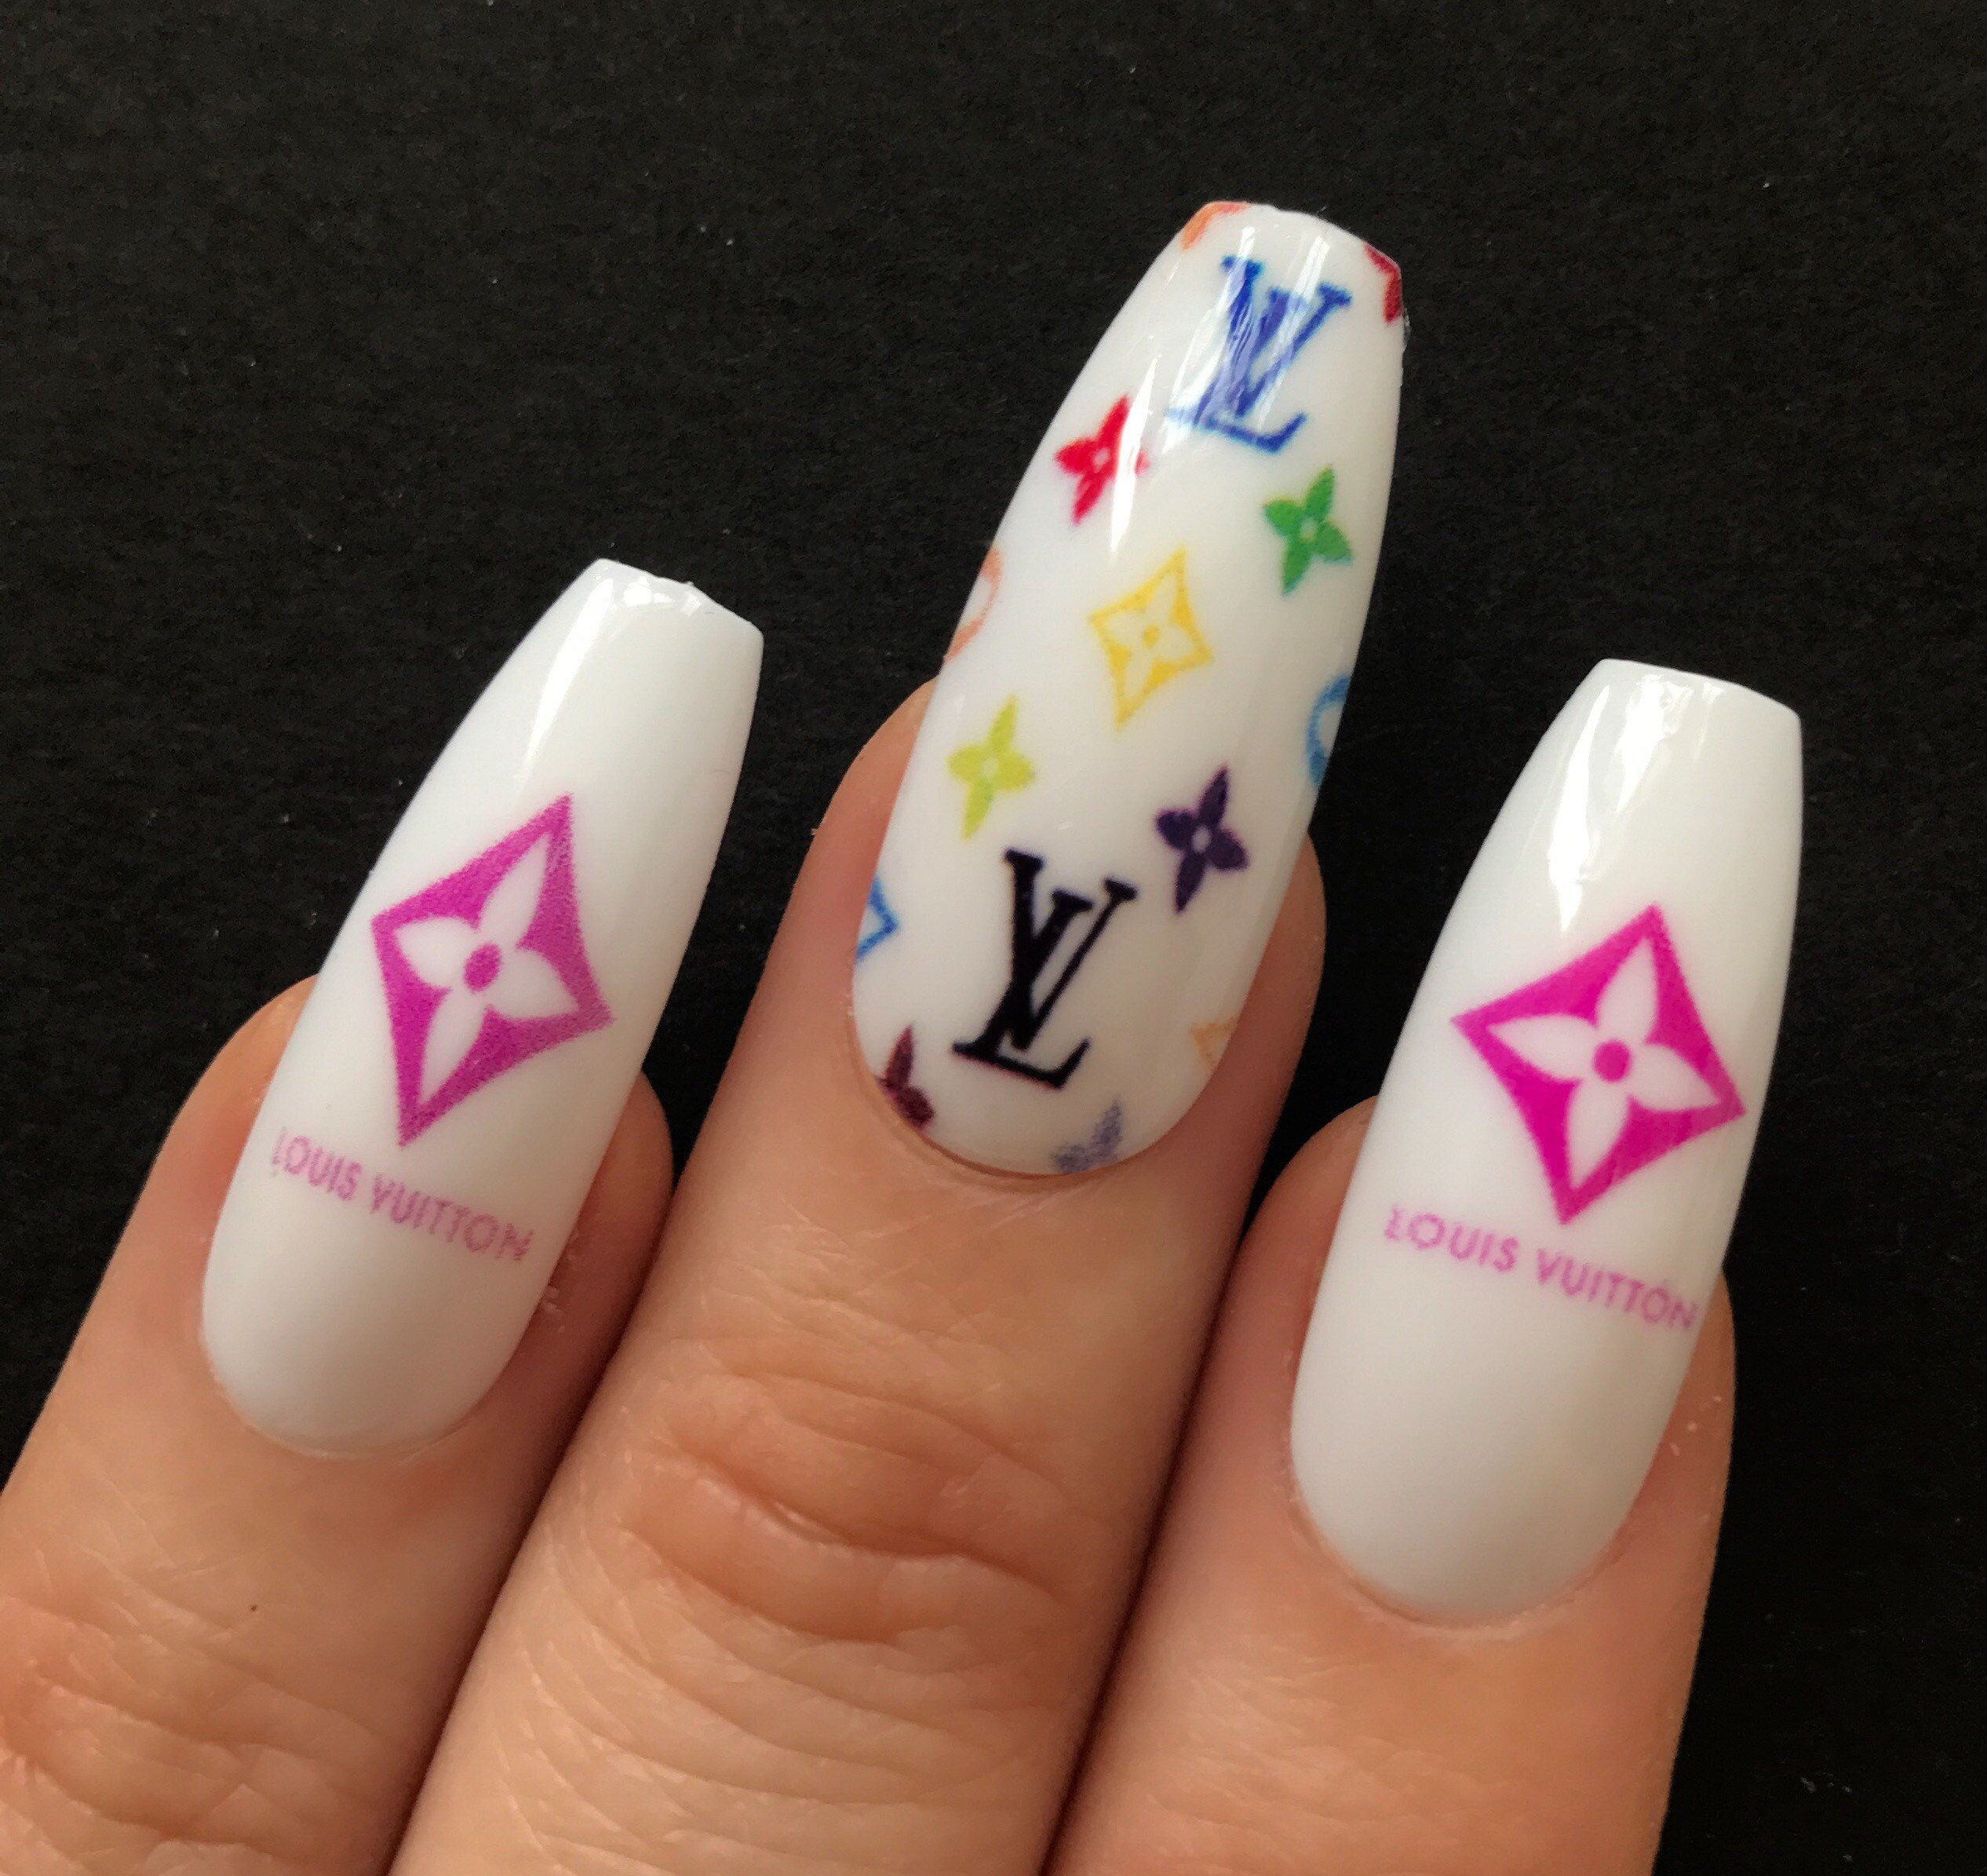 Louisvuitton Lv Nails Nails Nail Printer Ballerina Nails